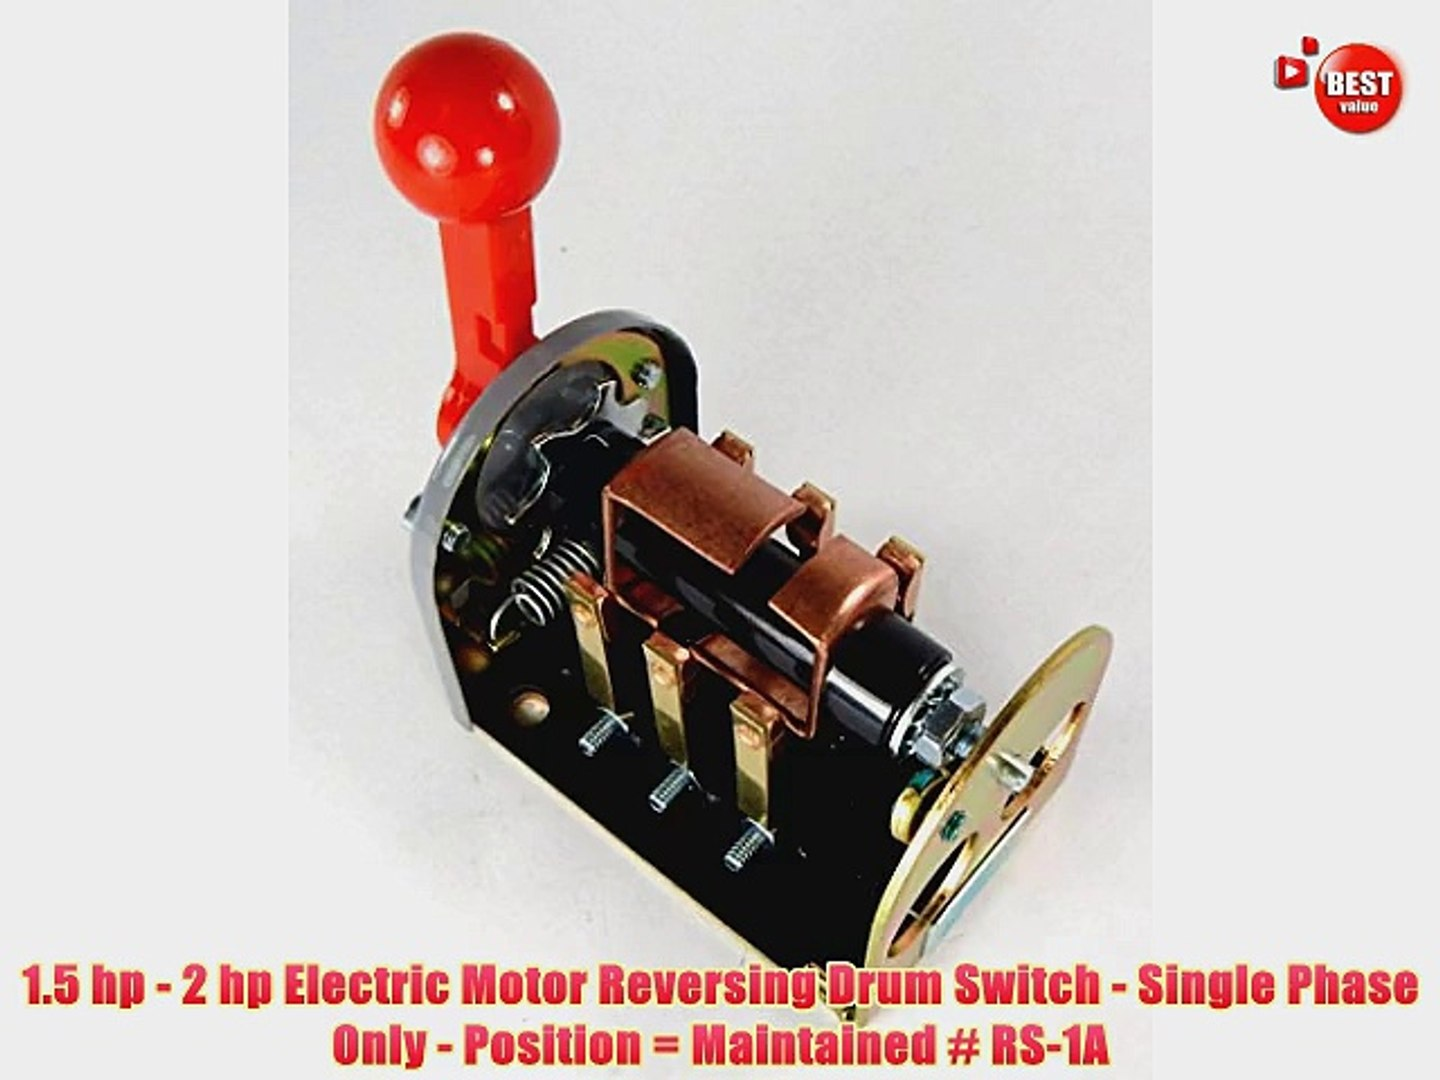 hight resolution of 1 5 hp 2 hp electric motor reversing drum switch single phase only position video dailymotion